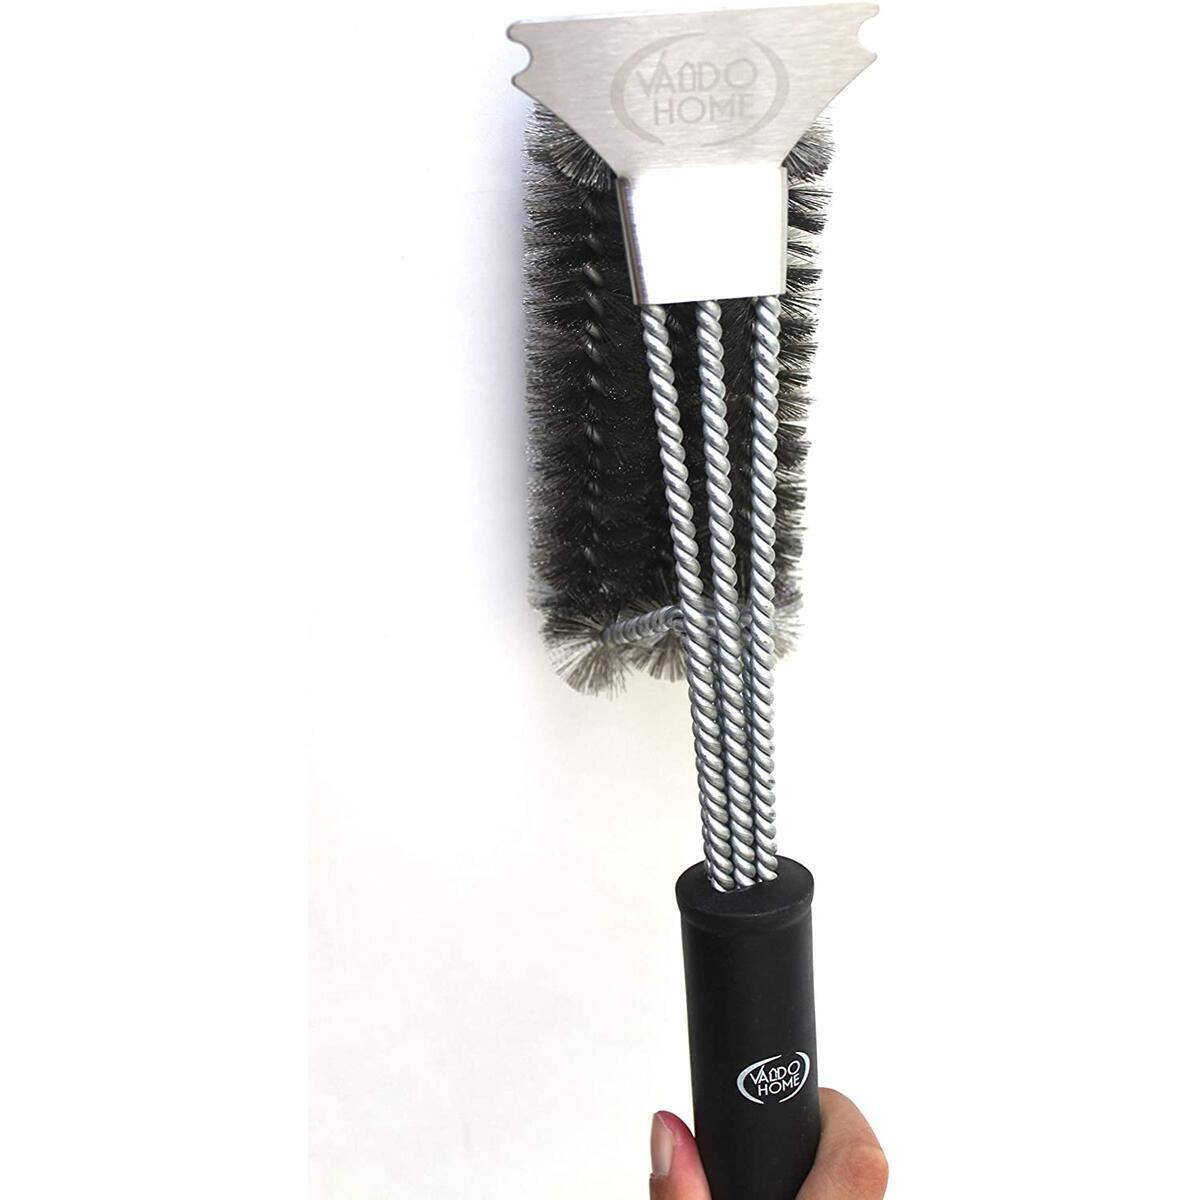 Heavy Duty BBQ Grill Stainless Steel Cleaning Brush with Built in Scraper